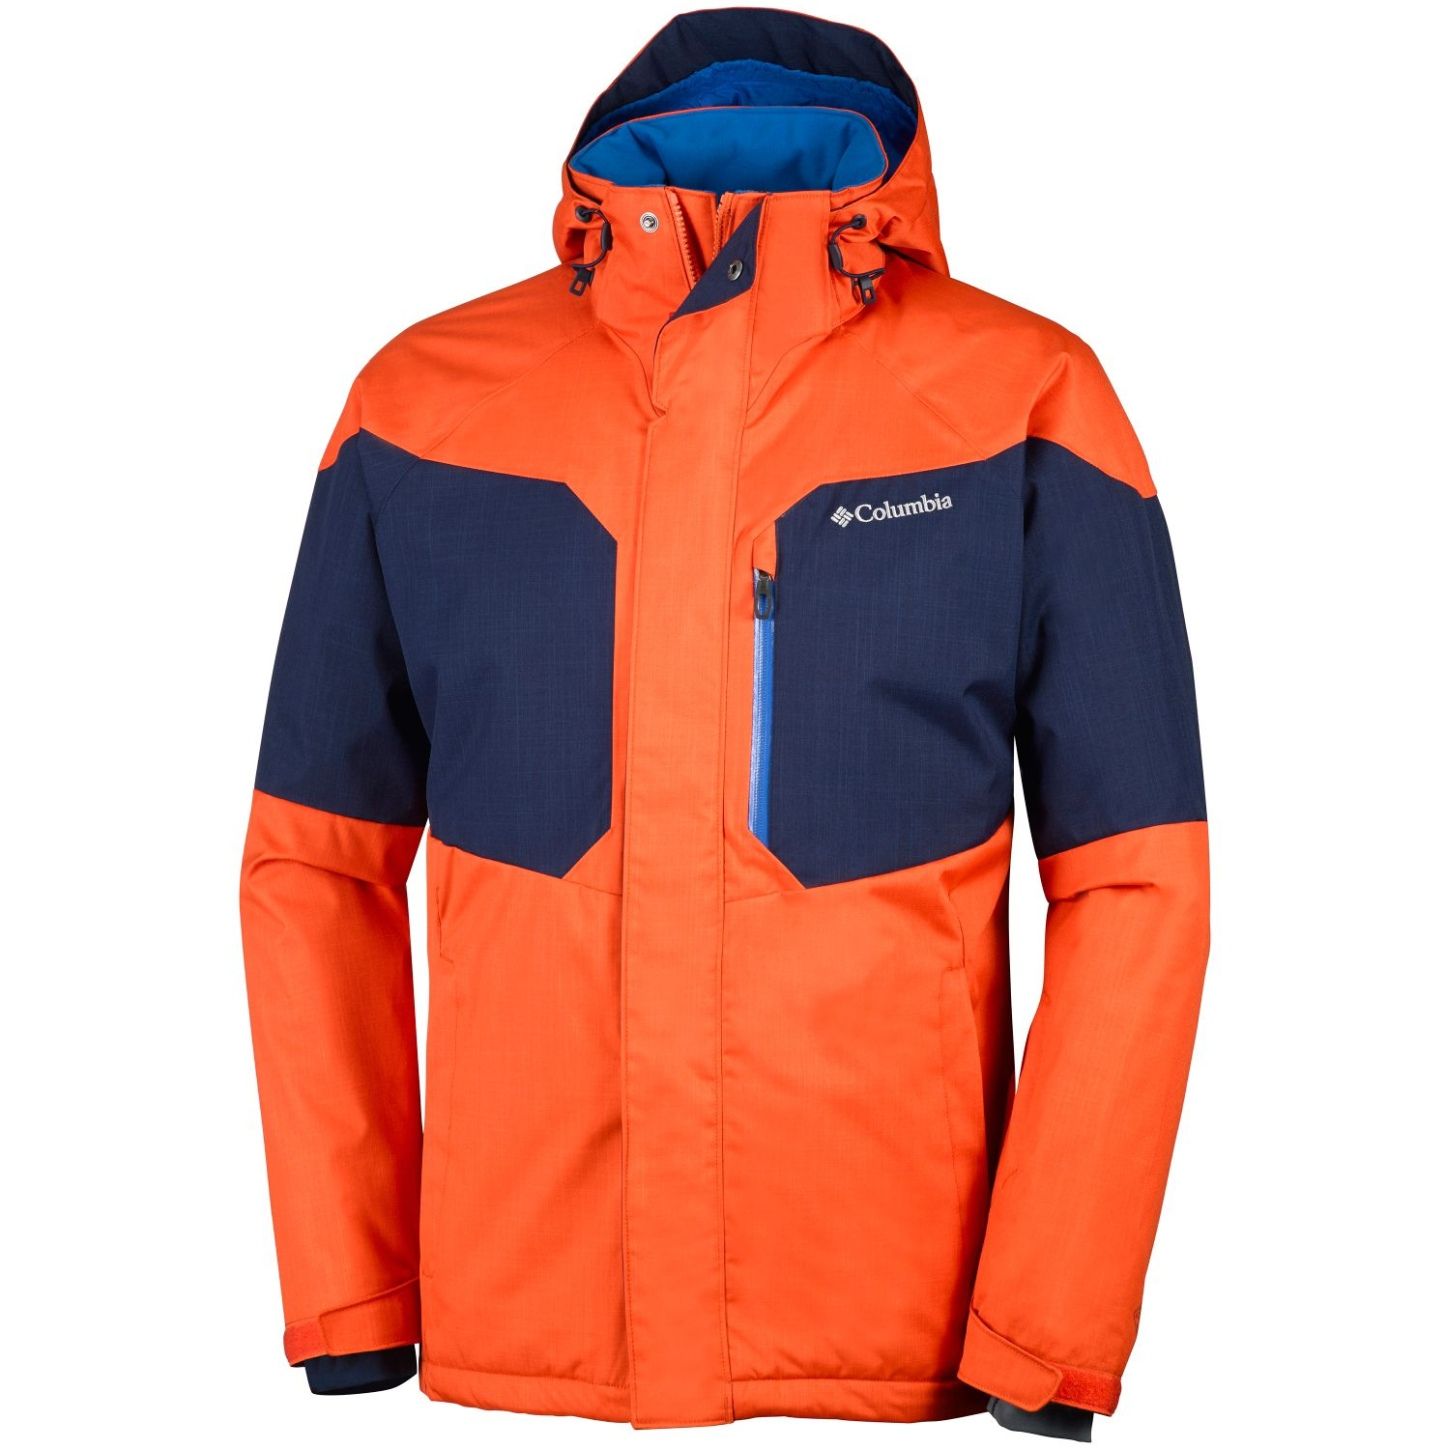 Columbia Ski-Jacke Alpine Action für Herren Tangy Orange, Collegiate Navy-30